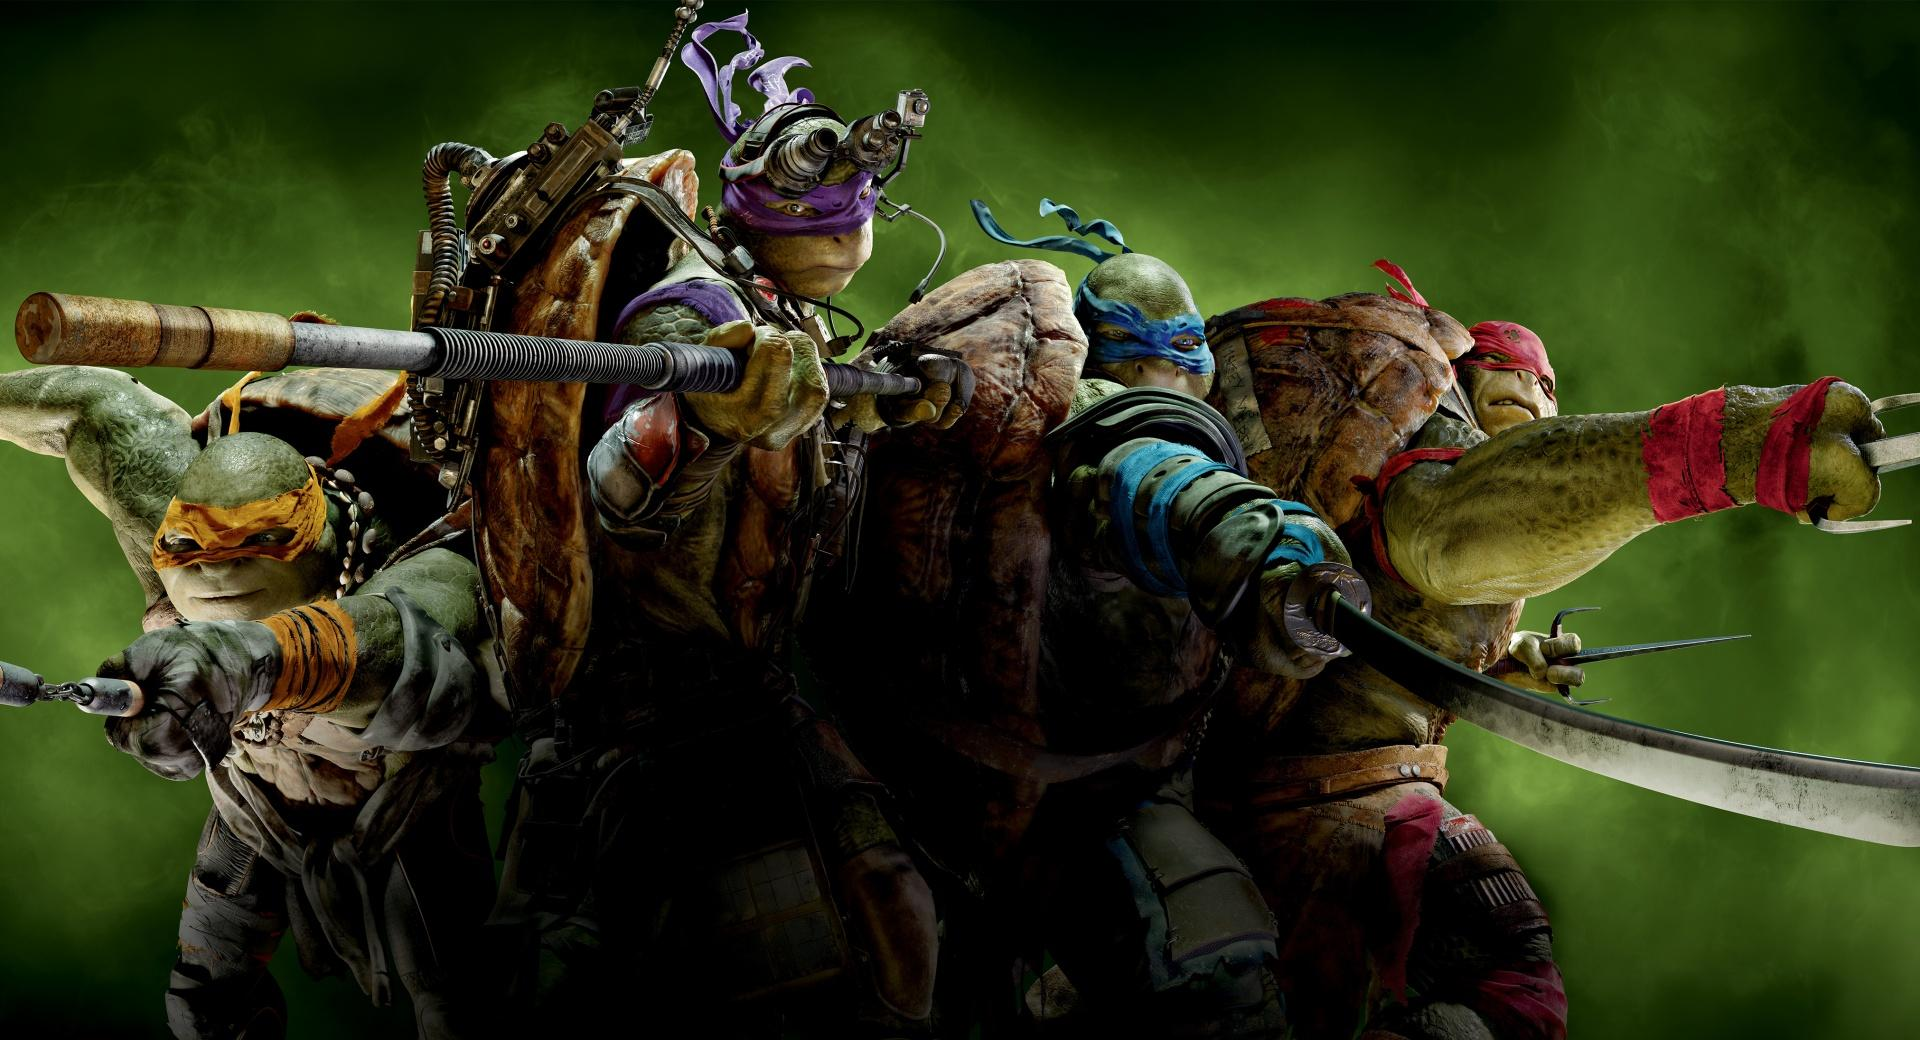 Ninja Turtles 2014 wallpapers HD quality